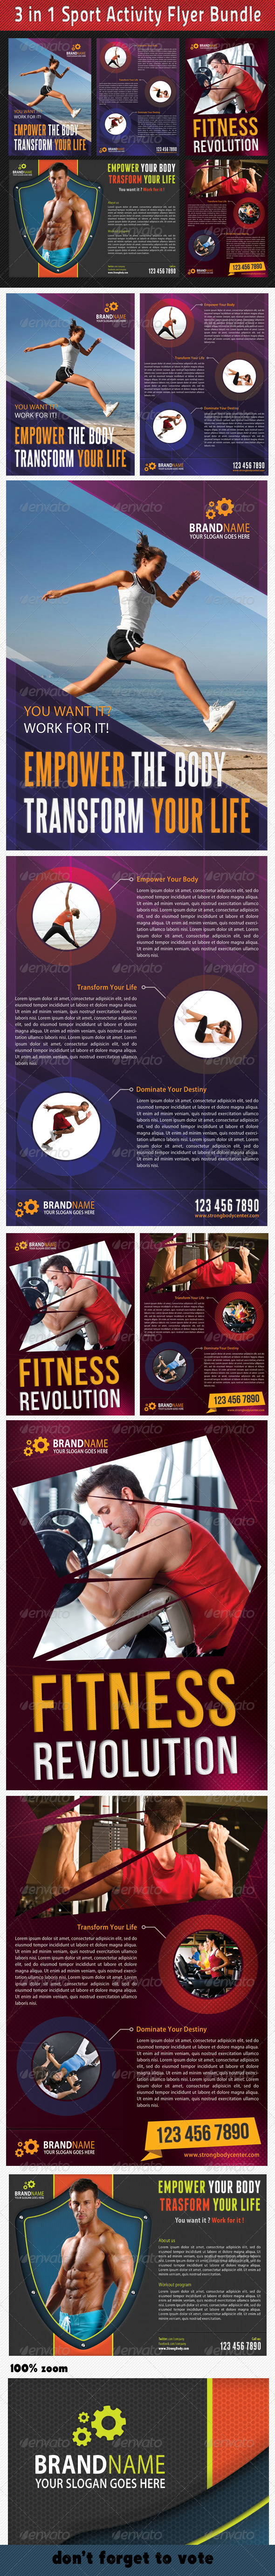 GraphicRiver 3 in 1 Sport Activity Flyer Bundle 02 6714185